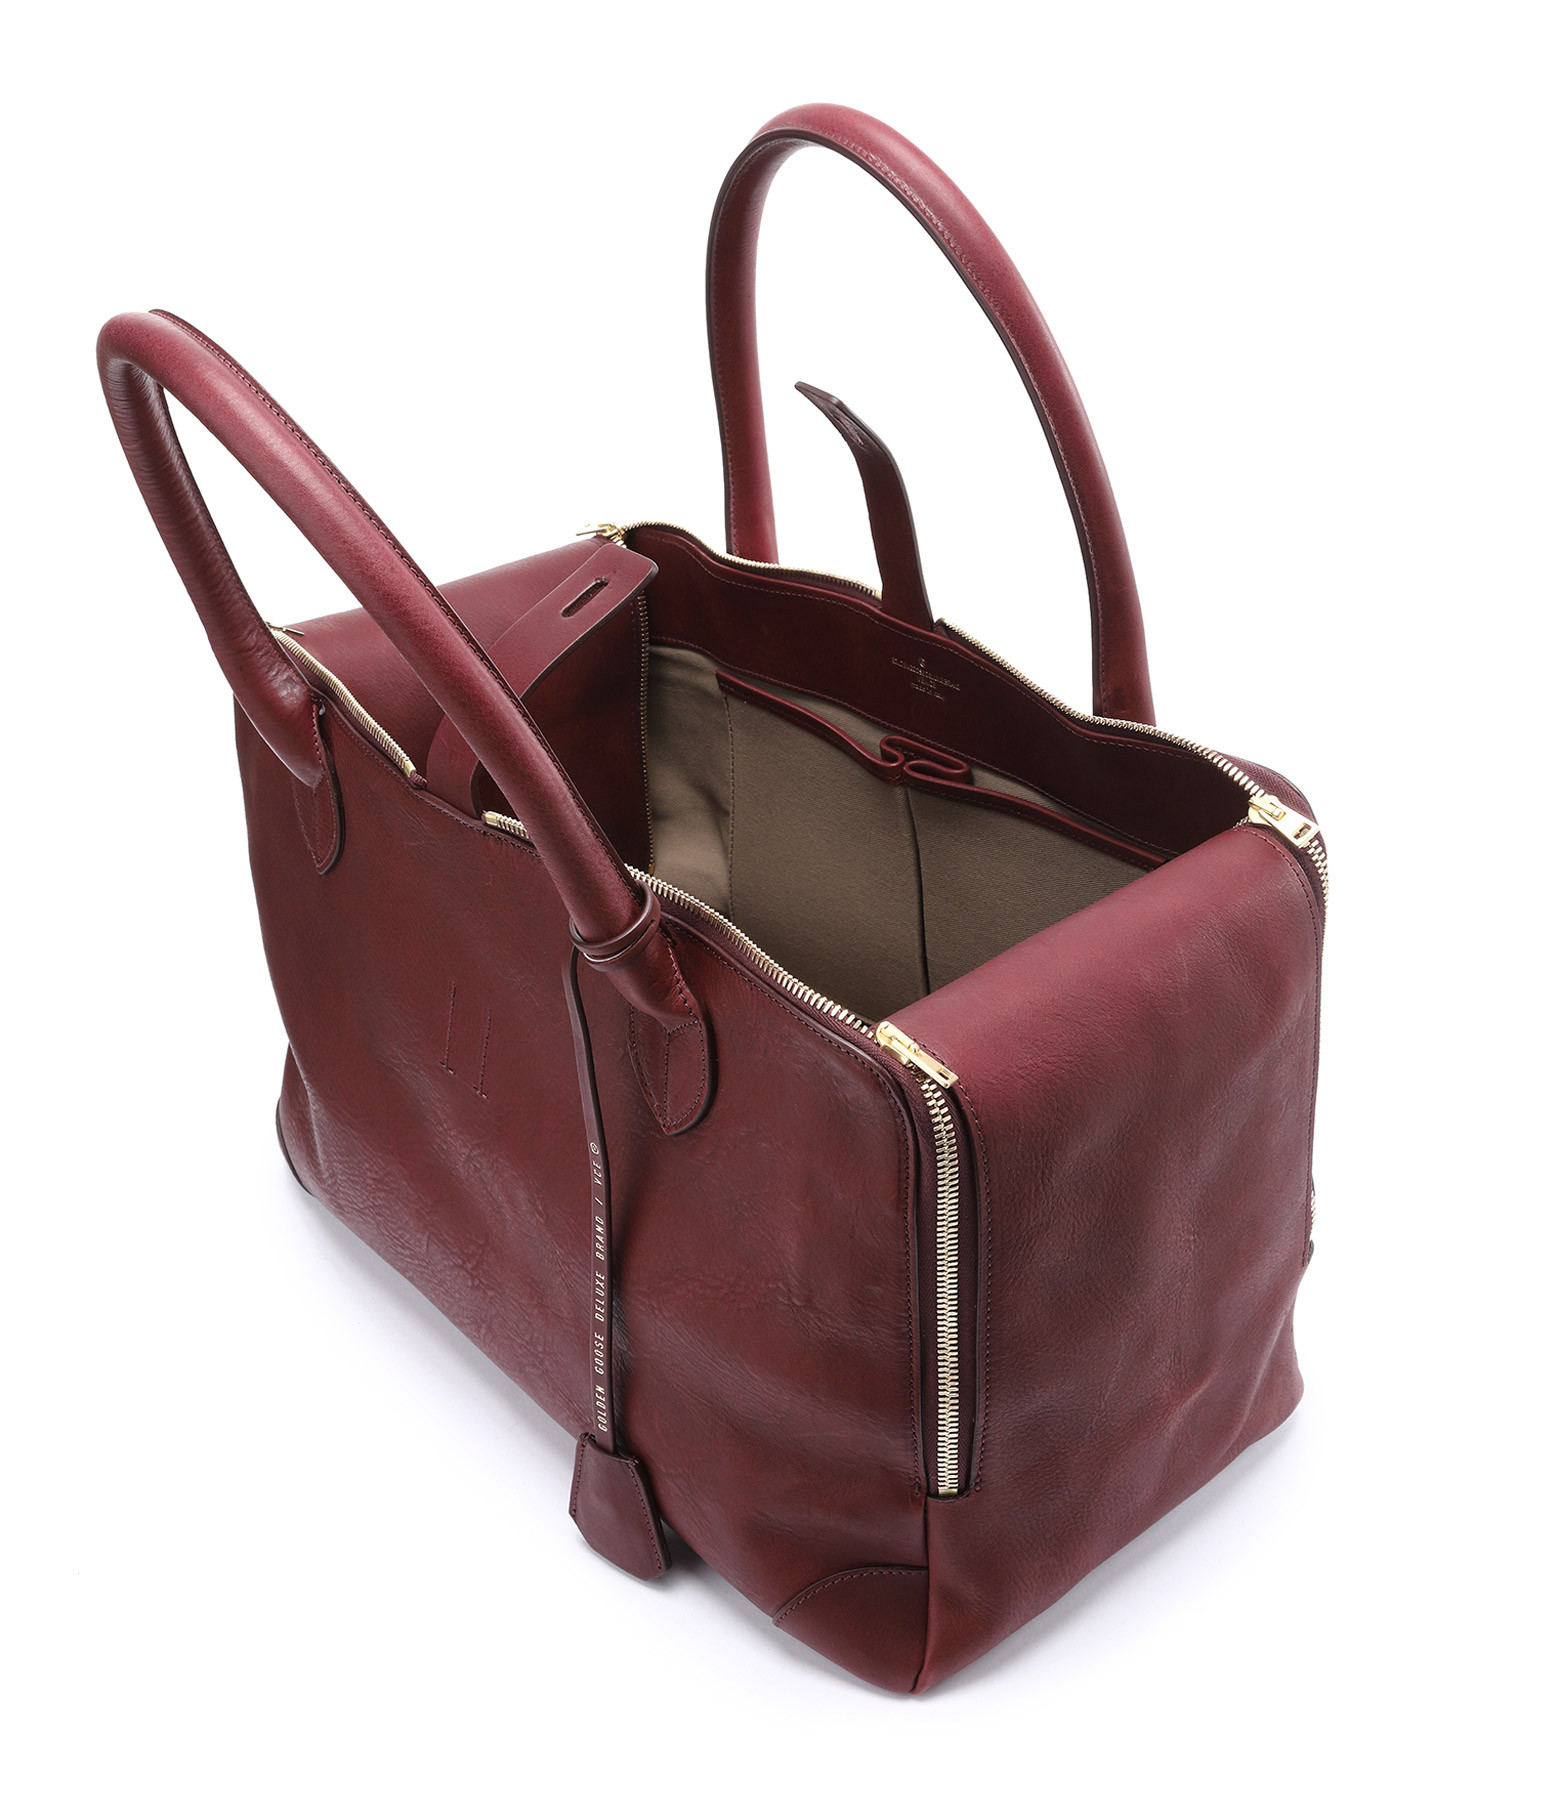 Bordeaux Sac Equipage Equipage Cuir Mm Sac zqMGUpSV